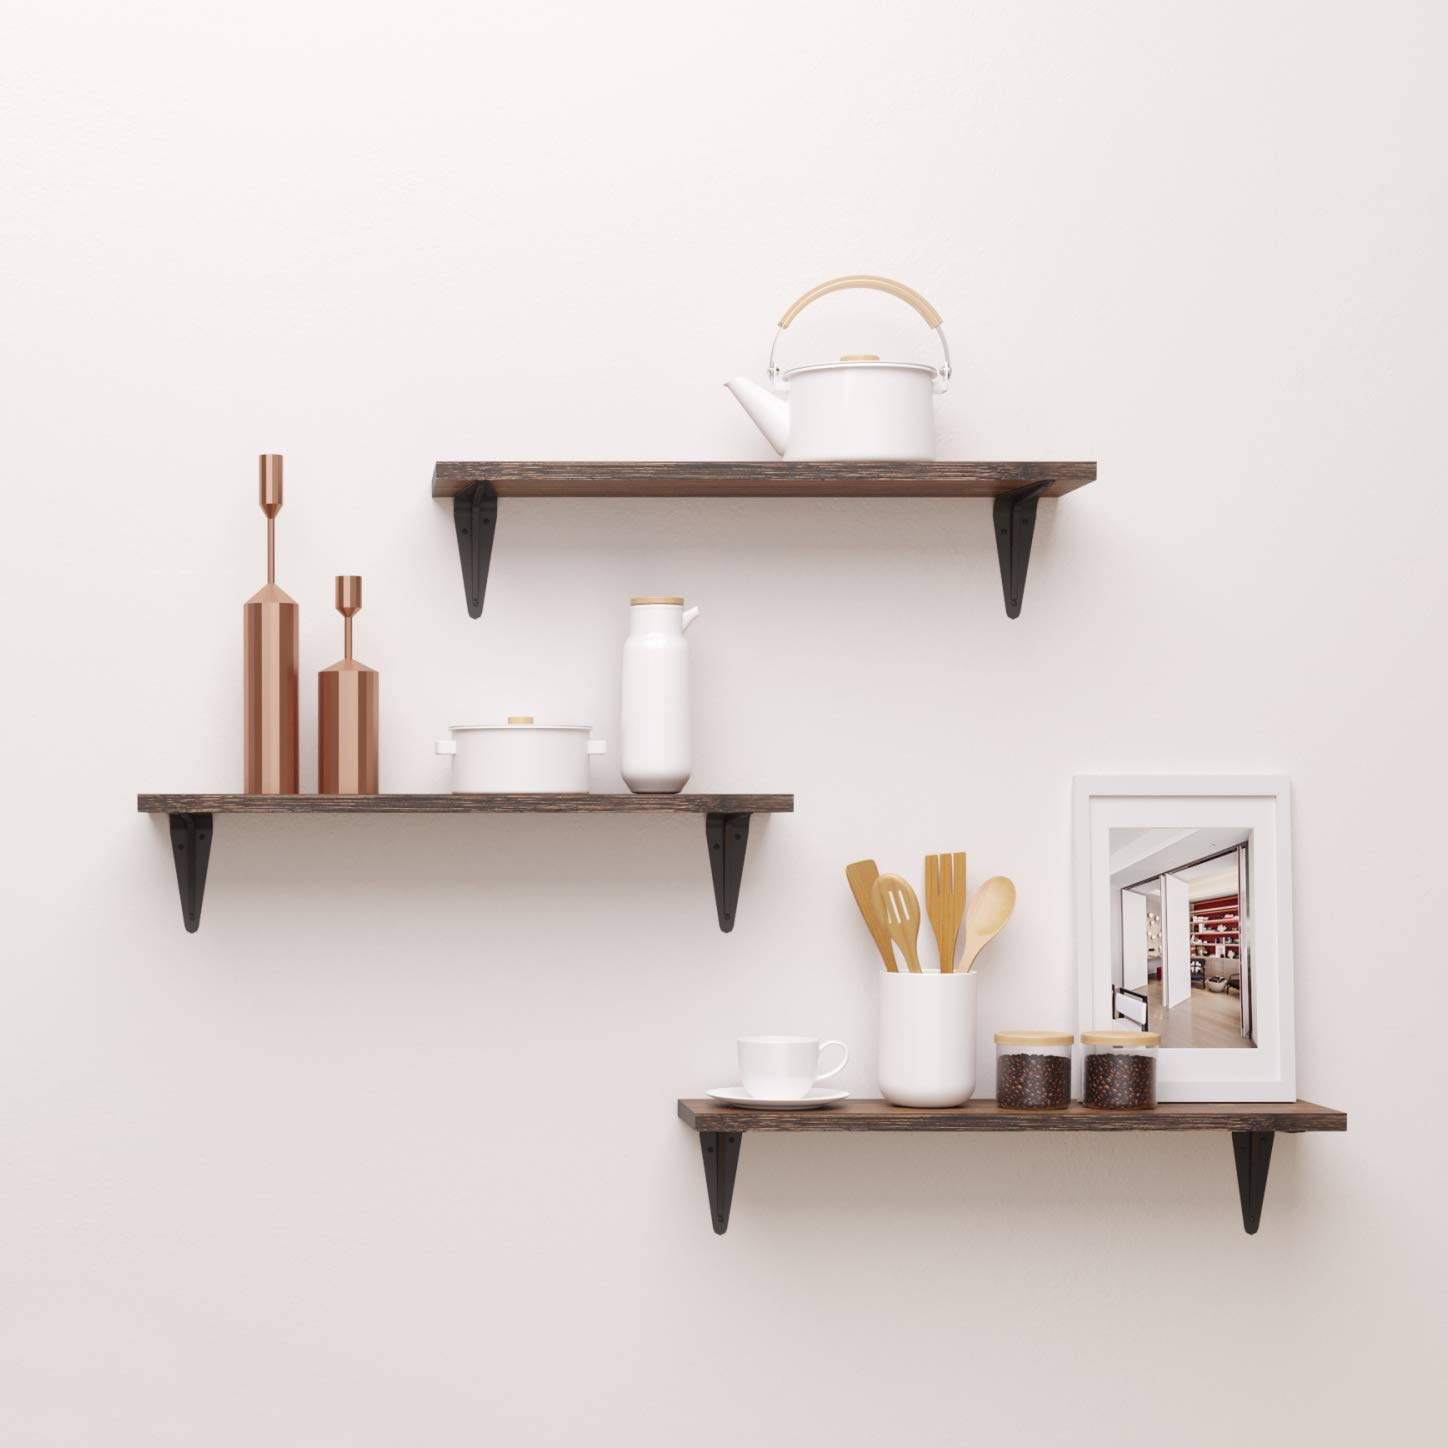 low priced ed721 8ec2e BAMFOX Floating Shelves,Wall Shelf Set of 3,Wall Mounted Floating Shelf  with Large Storage for Bedroom Bathroom Living Room Kitchen Office